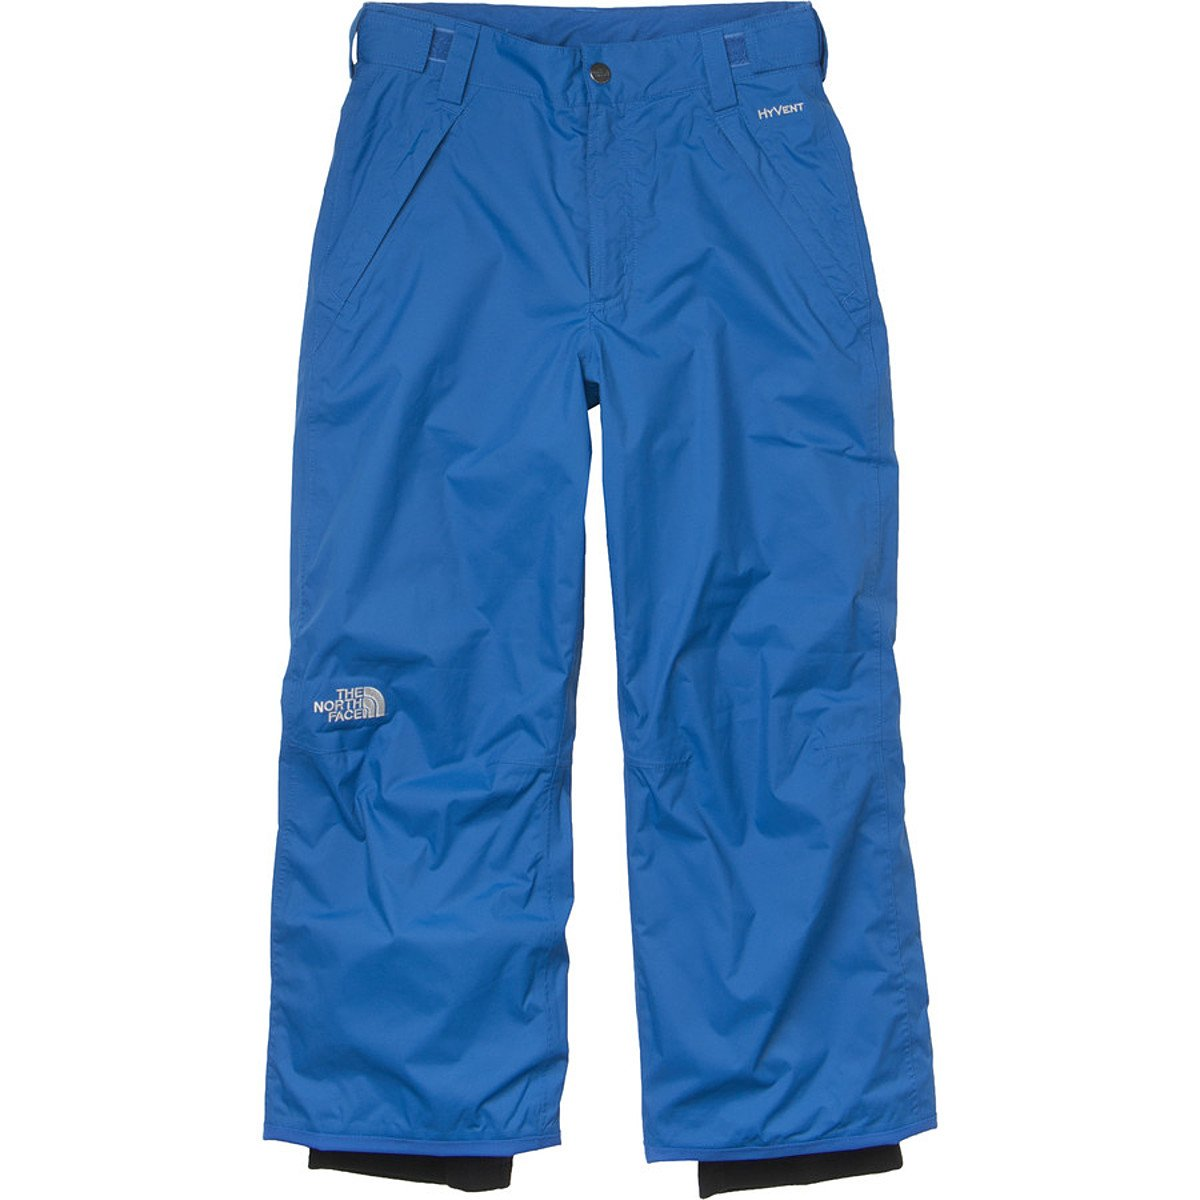 The North Face B Free Course Triclimate Pants Snorkel Blue Boys XL